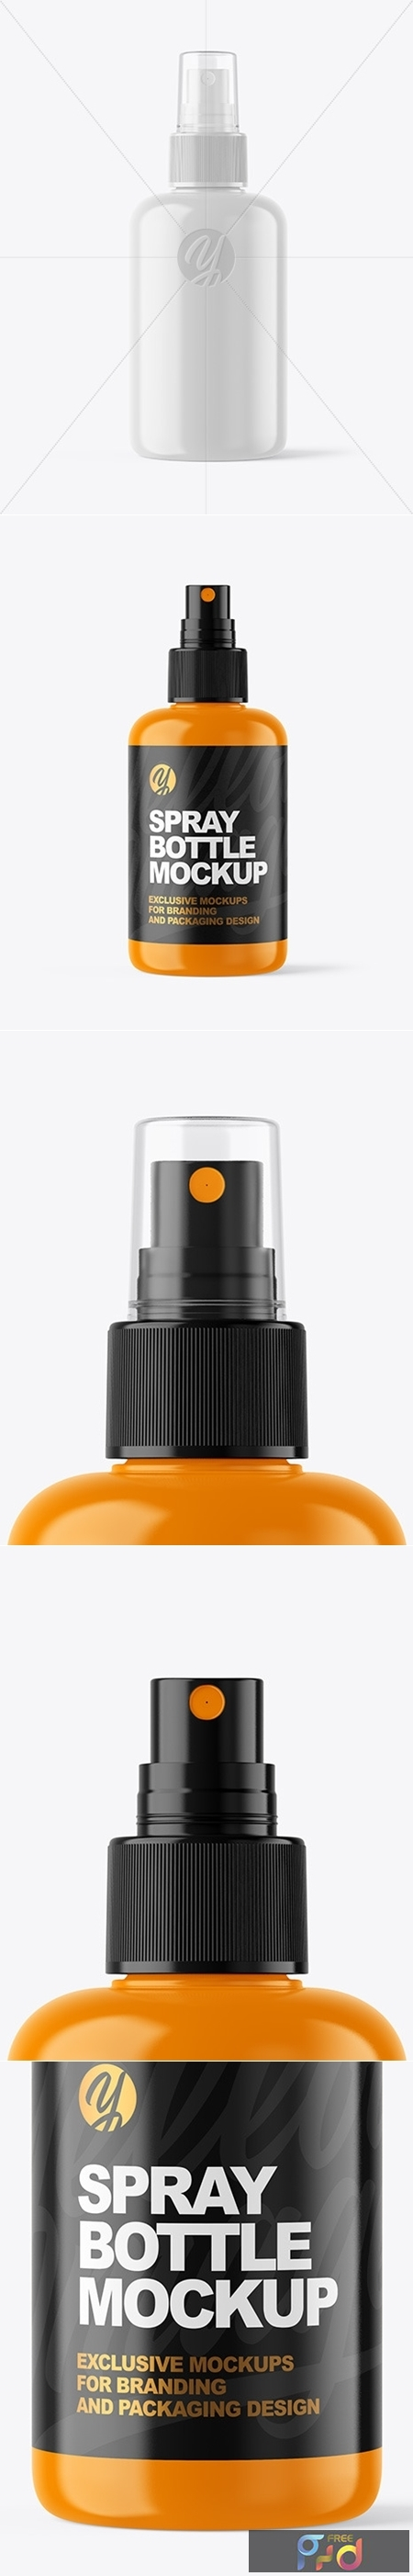 Glossy Spray Bottle Mockup 53473 1